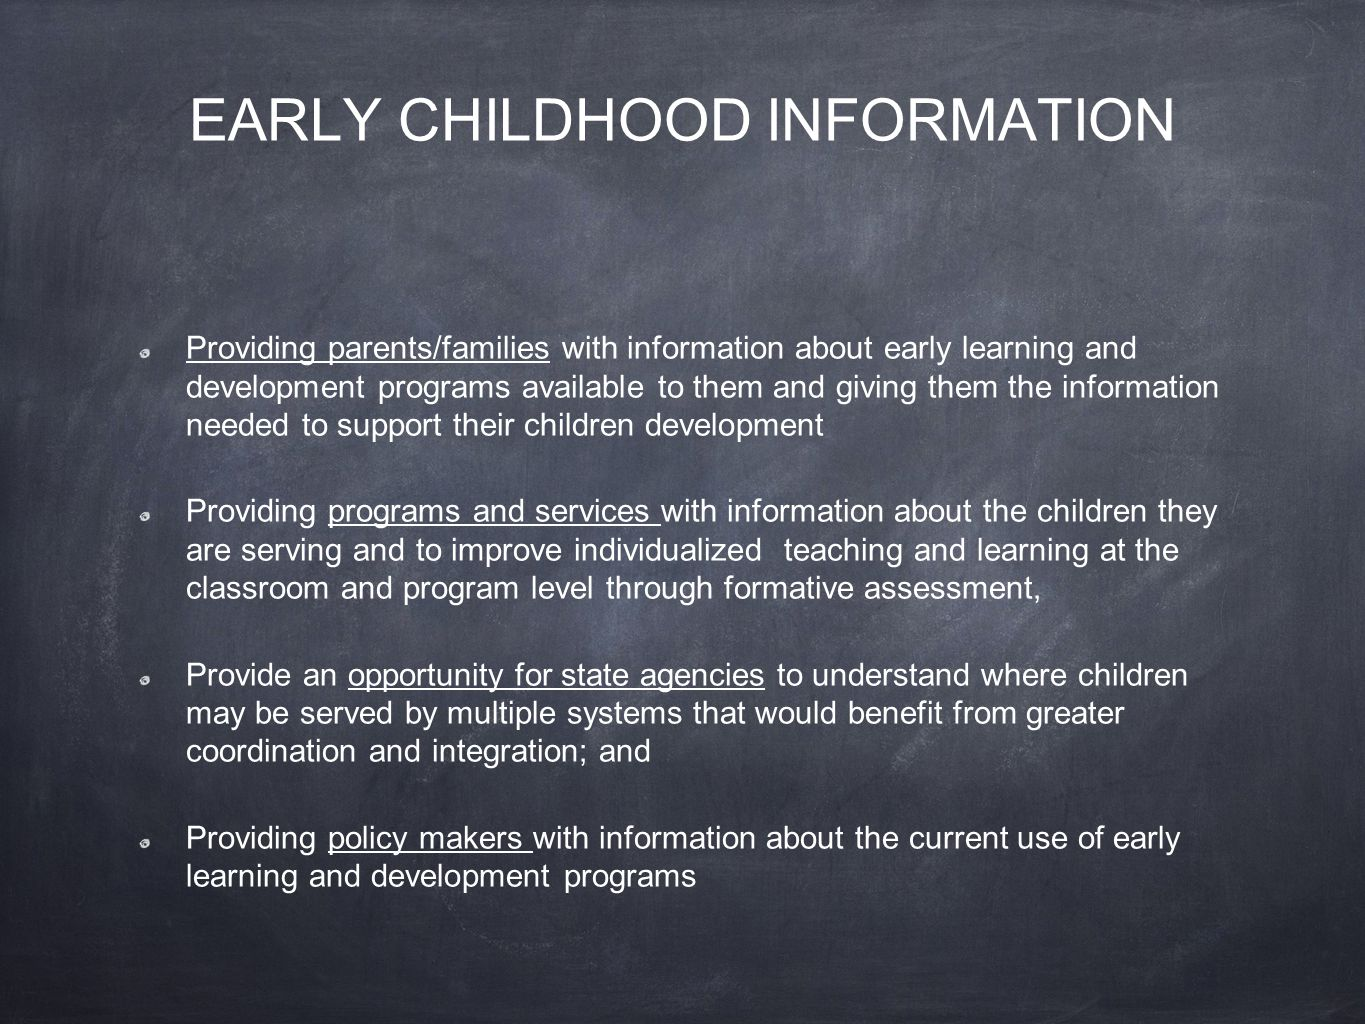 EARLY CHILDHOOD INFORMATION Providing parents/families with information about early learning and development programs available to them and giving them the information needed to support their children development Providing programs and services with information about the children they are serving and to improve individualized teaching and learning at the classroom and program level through formative assessment, Provide an opportunity for state agencies to understand where children may be served by multiple systems that would benefit from greater coordination and integration; and Providing policy makers with information about the current use of early learning and development programs